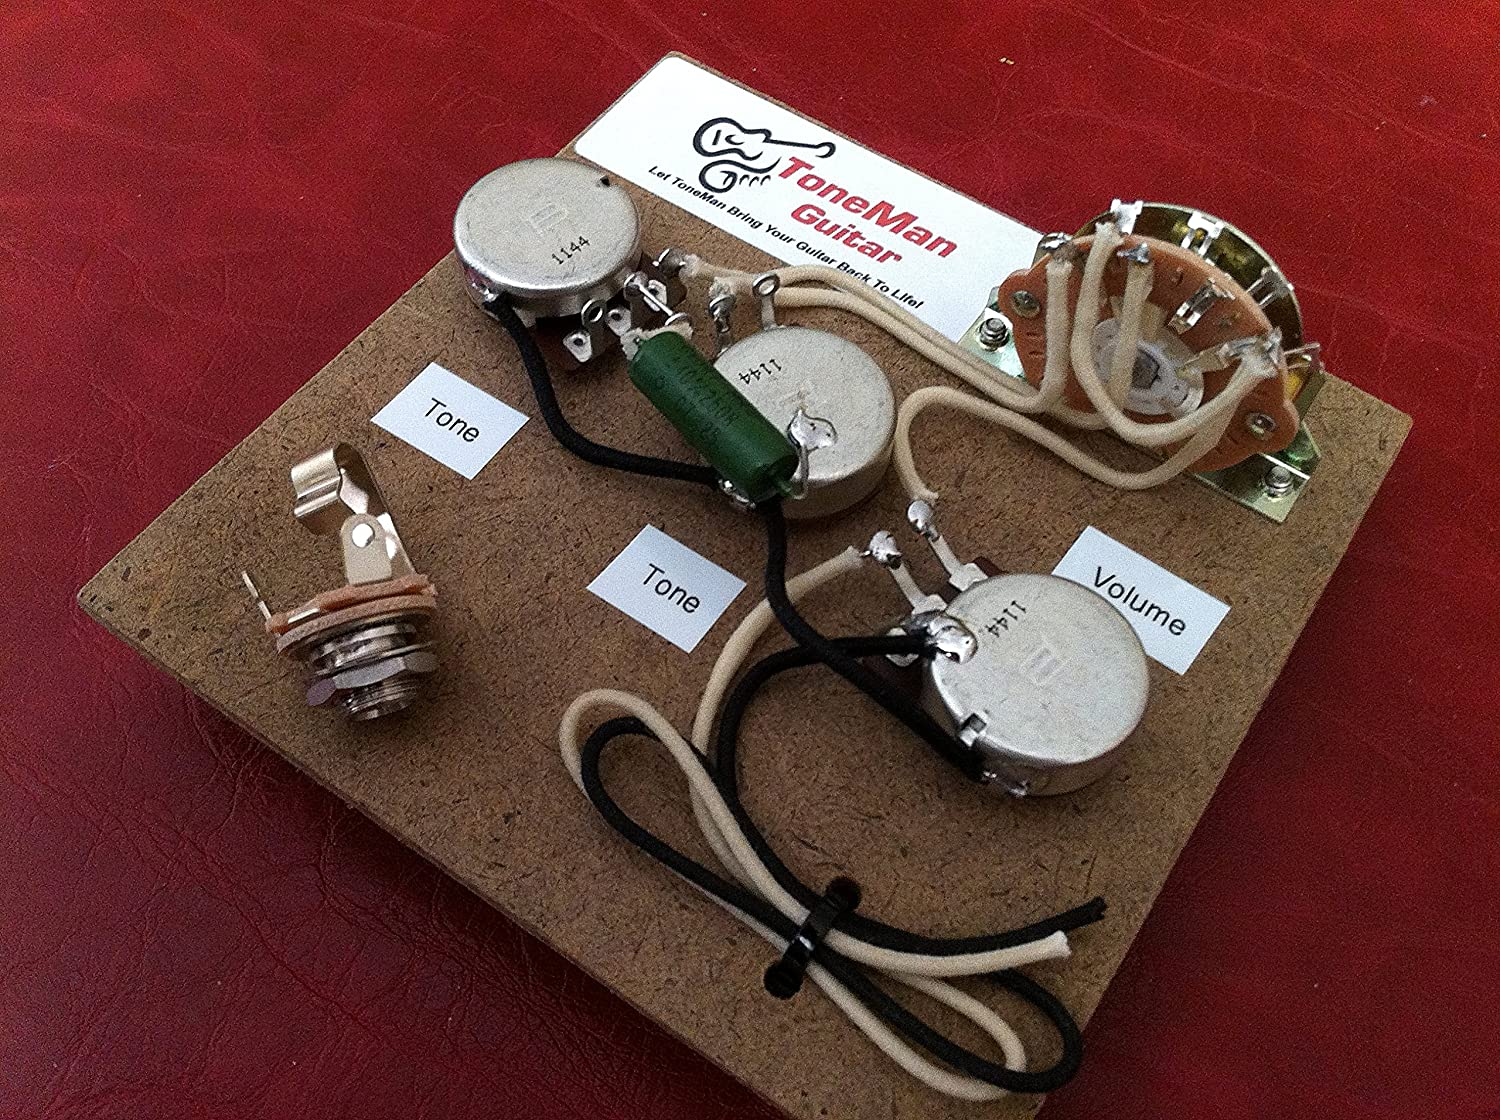 Amazon.com: Stratocaster Upgrade Wiring Harness 50's Vintage wiring  Paper-In-Oil .047 Tone cap Vintage Cloth Push Back Wiring Thru Out,:  Musical Instruments